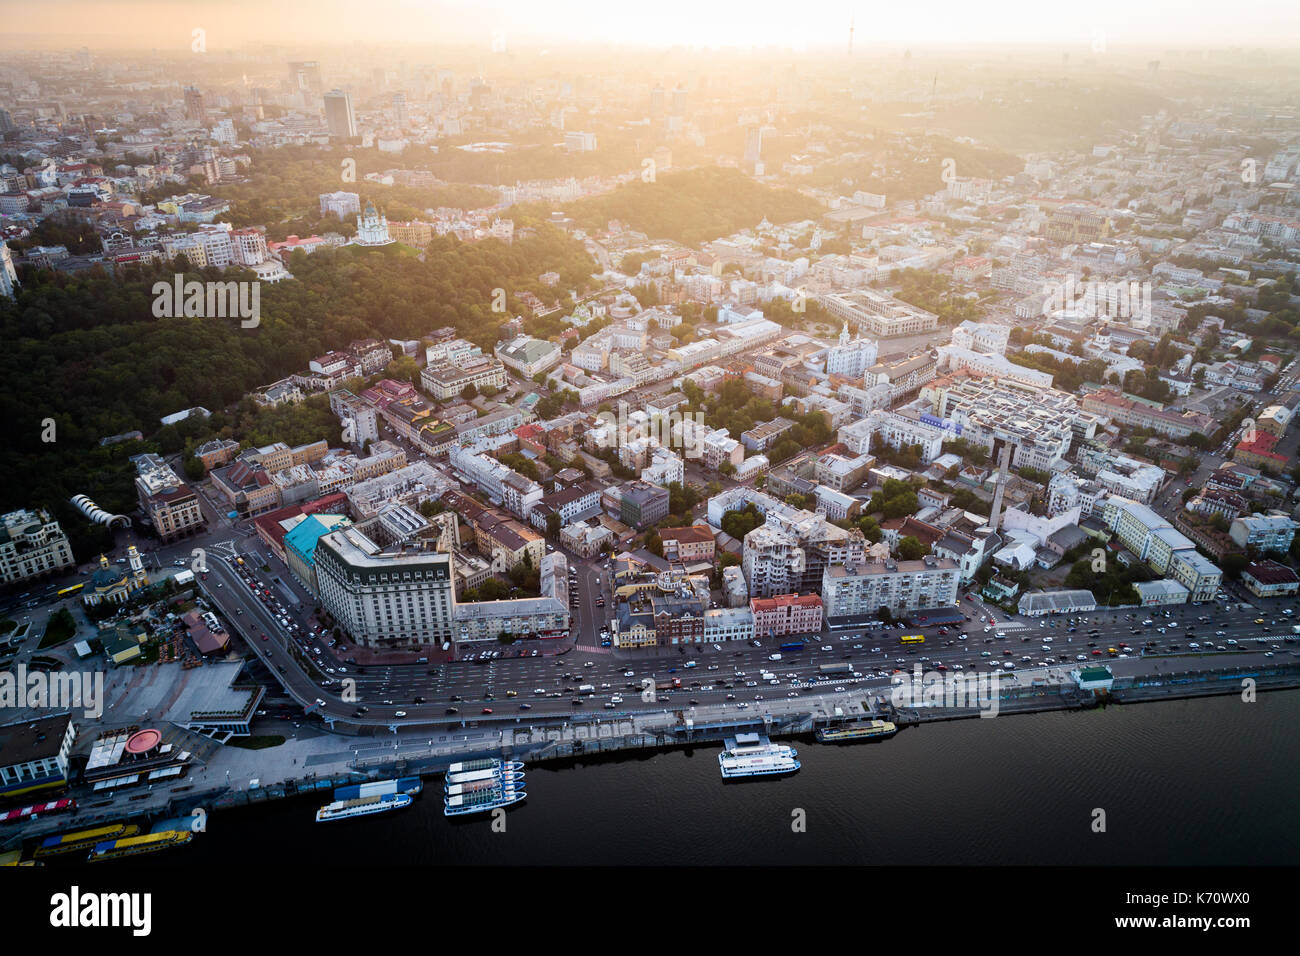 Panoramic view of a modern city at sunset. Postal square, Podol district, city center of Kiev, Ukraine. Aerial view - Stock Image